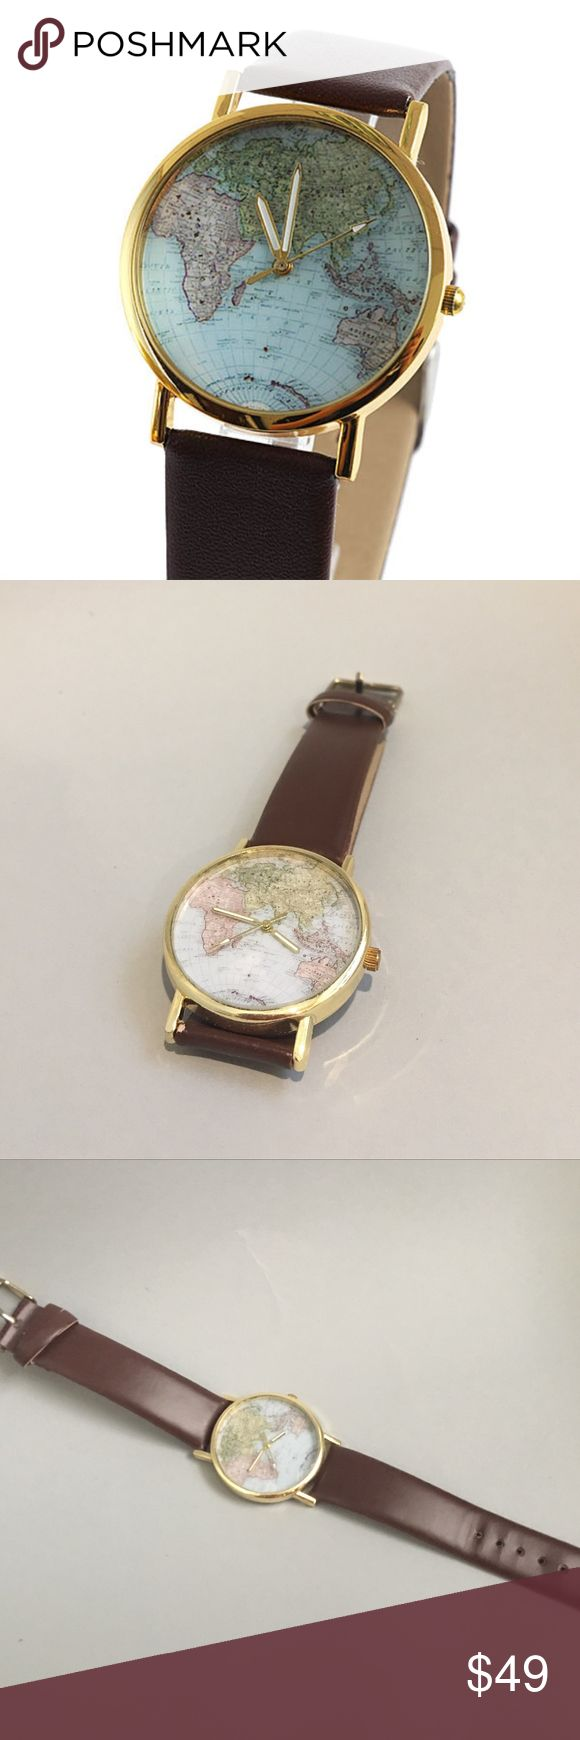 Wander Lust Leather Globe Watch - Brown THE WANDERLUST Around The World Leather Globe Watch - Brown Never used! Great gift for the world traveler :) Accessories Watches